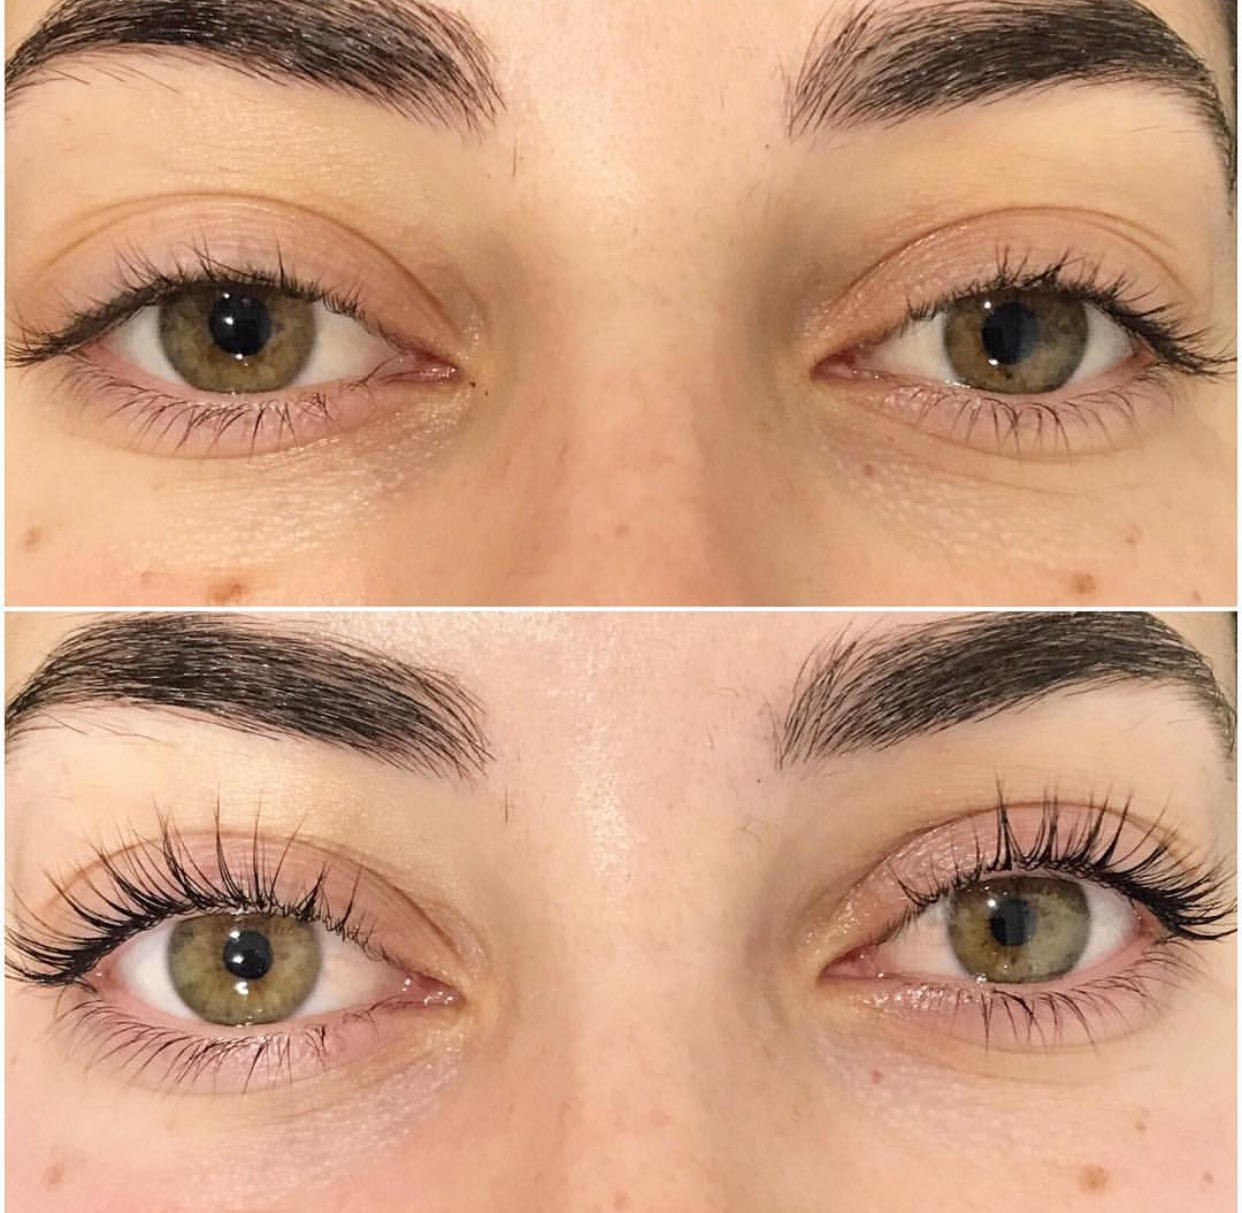 lash lift before and after.jpg